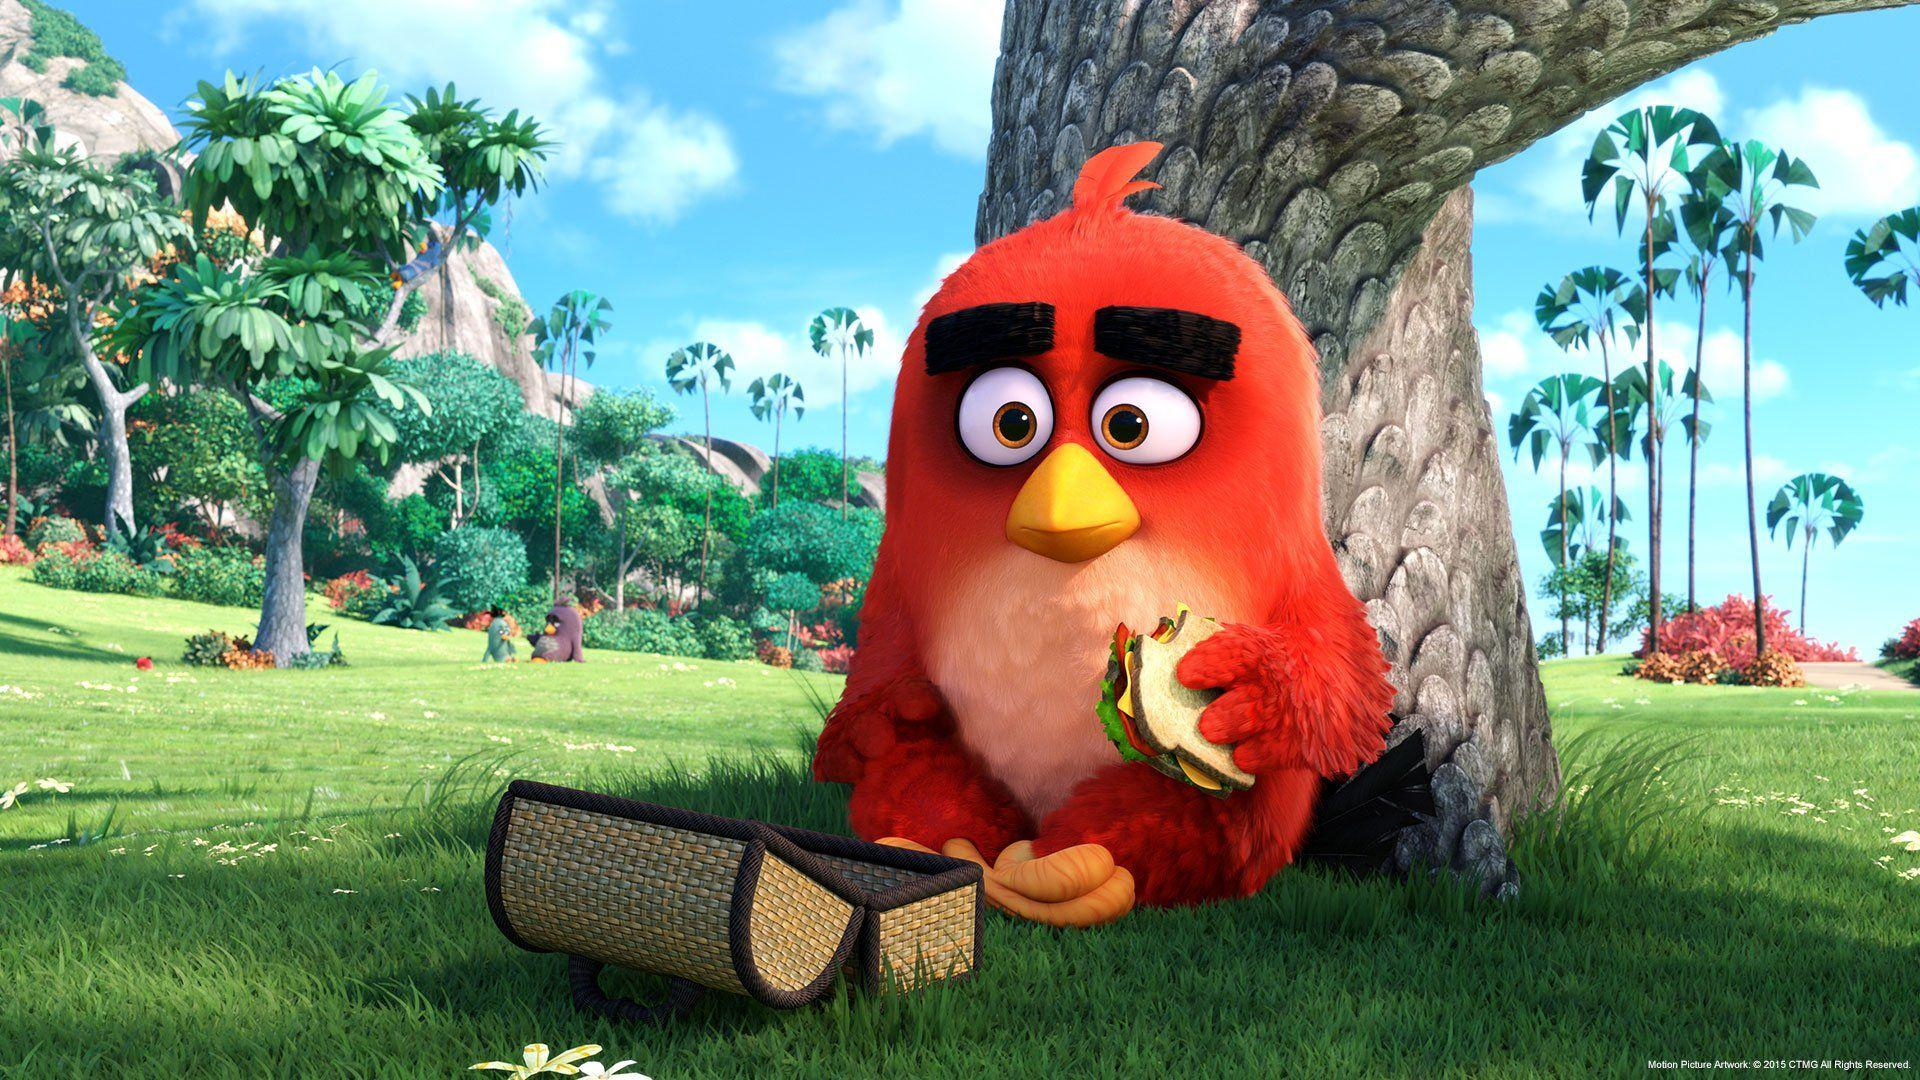 Angry Birds 2 Wallpapers - Wallpaper Cave